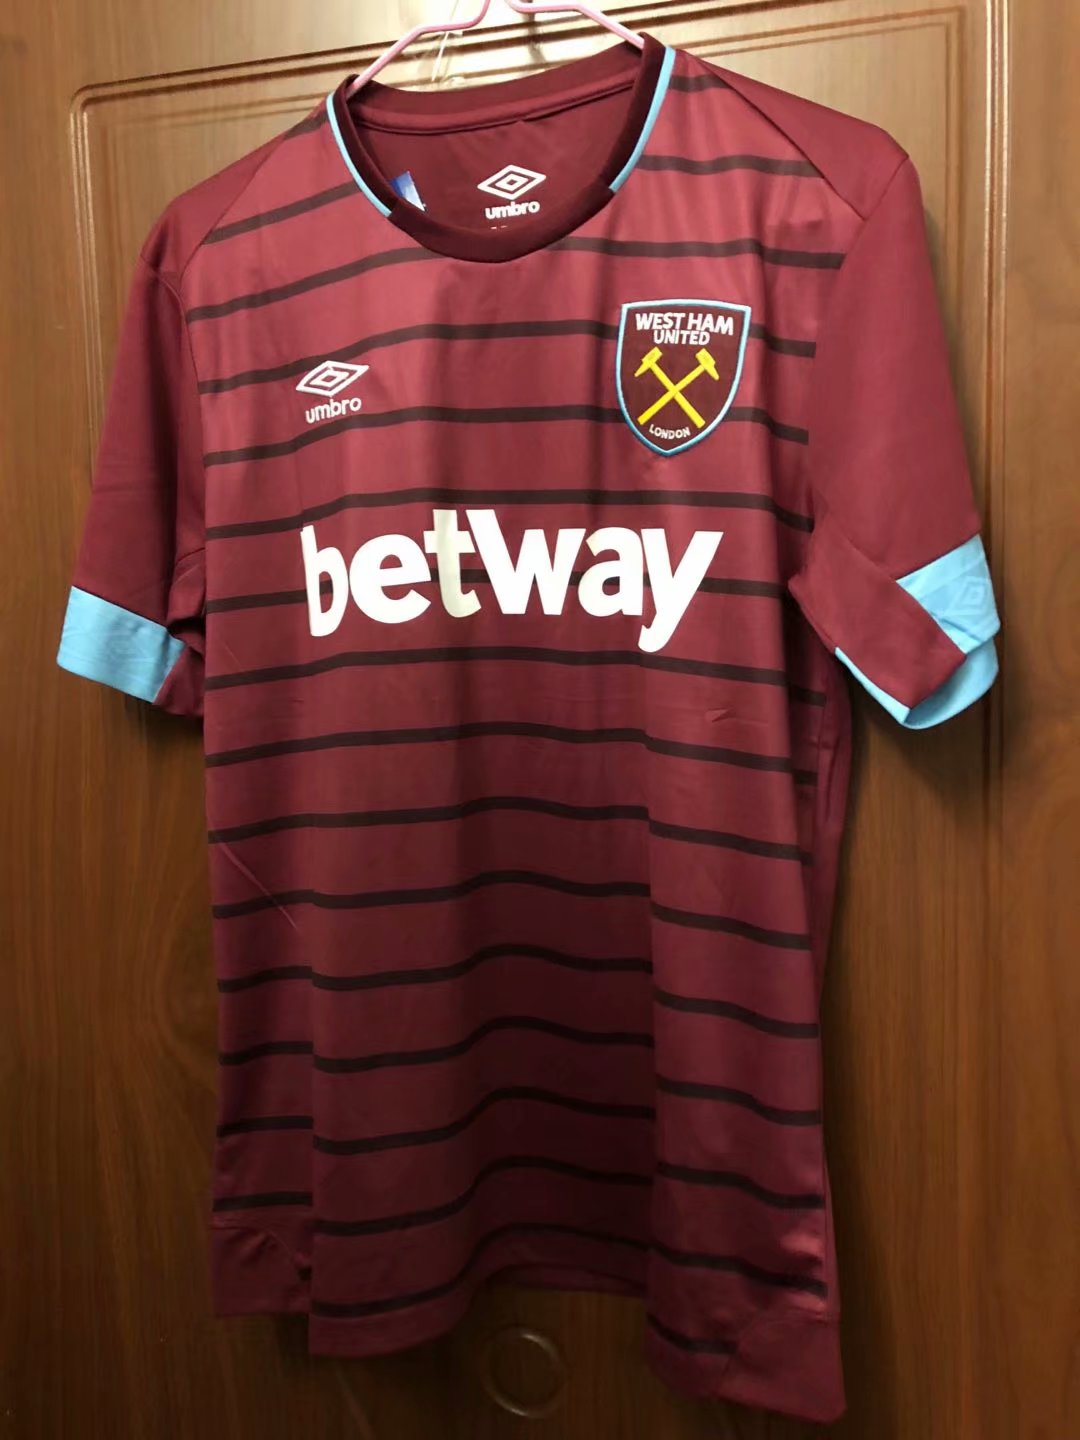 21384e1149a1 18-19 West ham Home Soccer Jersey -Thai Quality Football Shirt Customize  Name Number